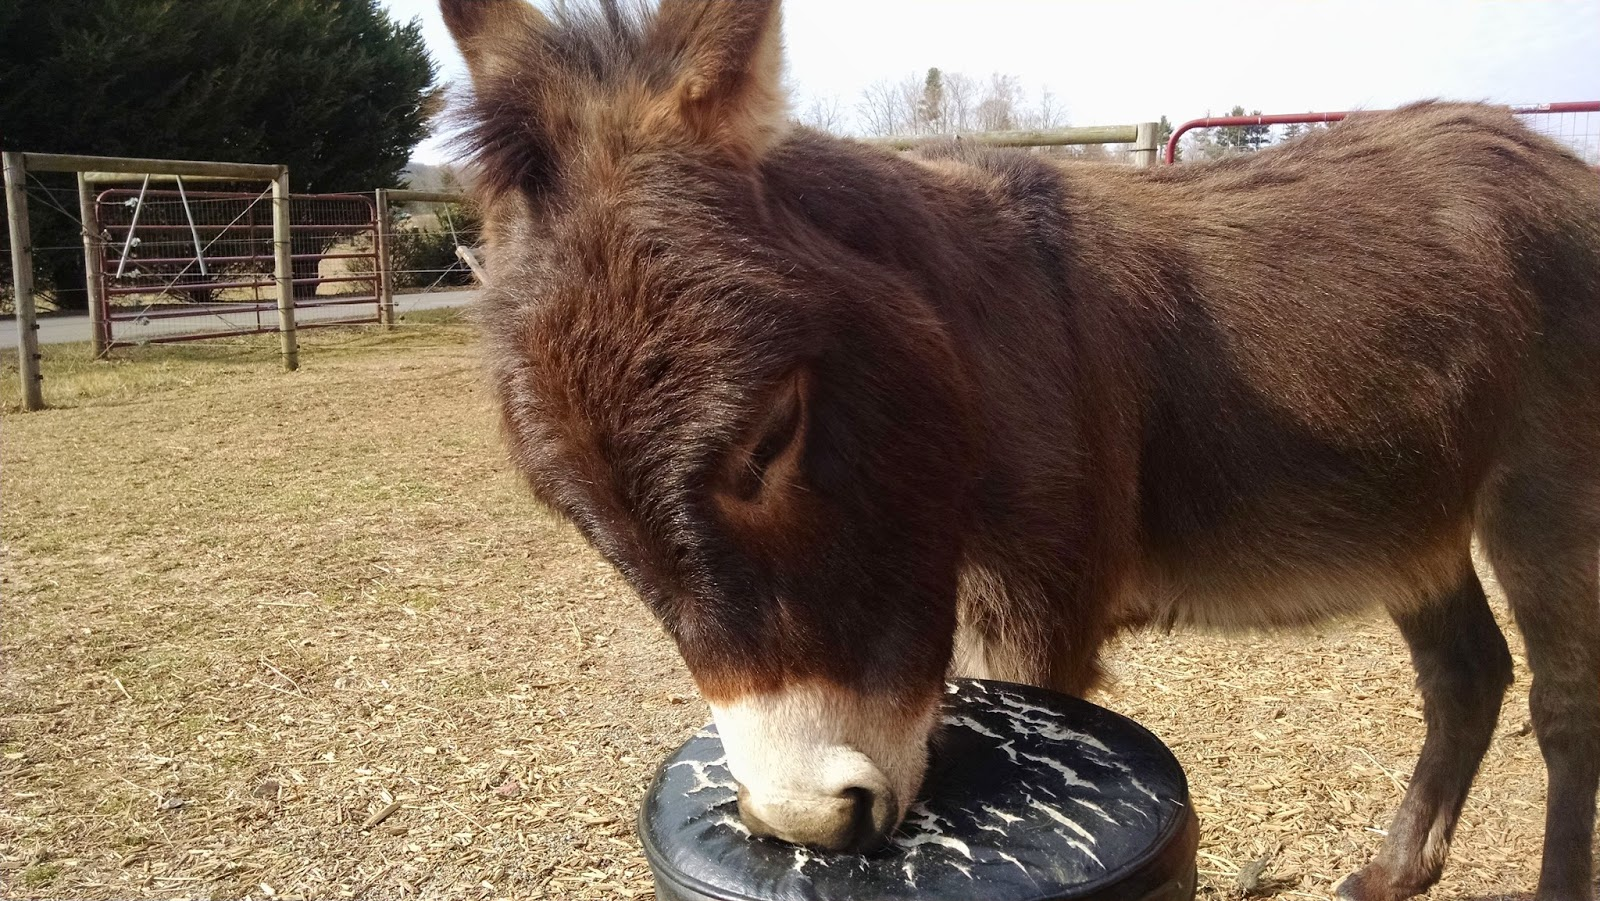 miniature donkey biting cushion on stool